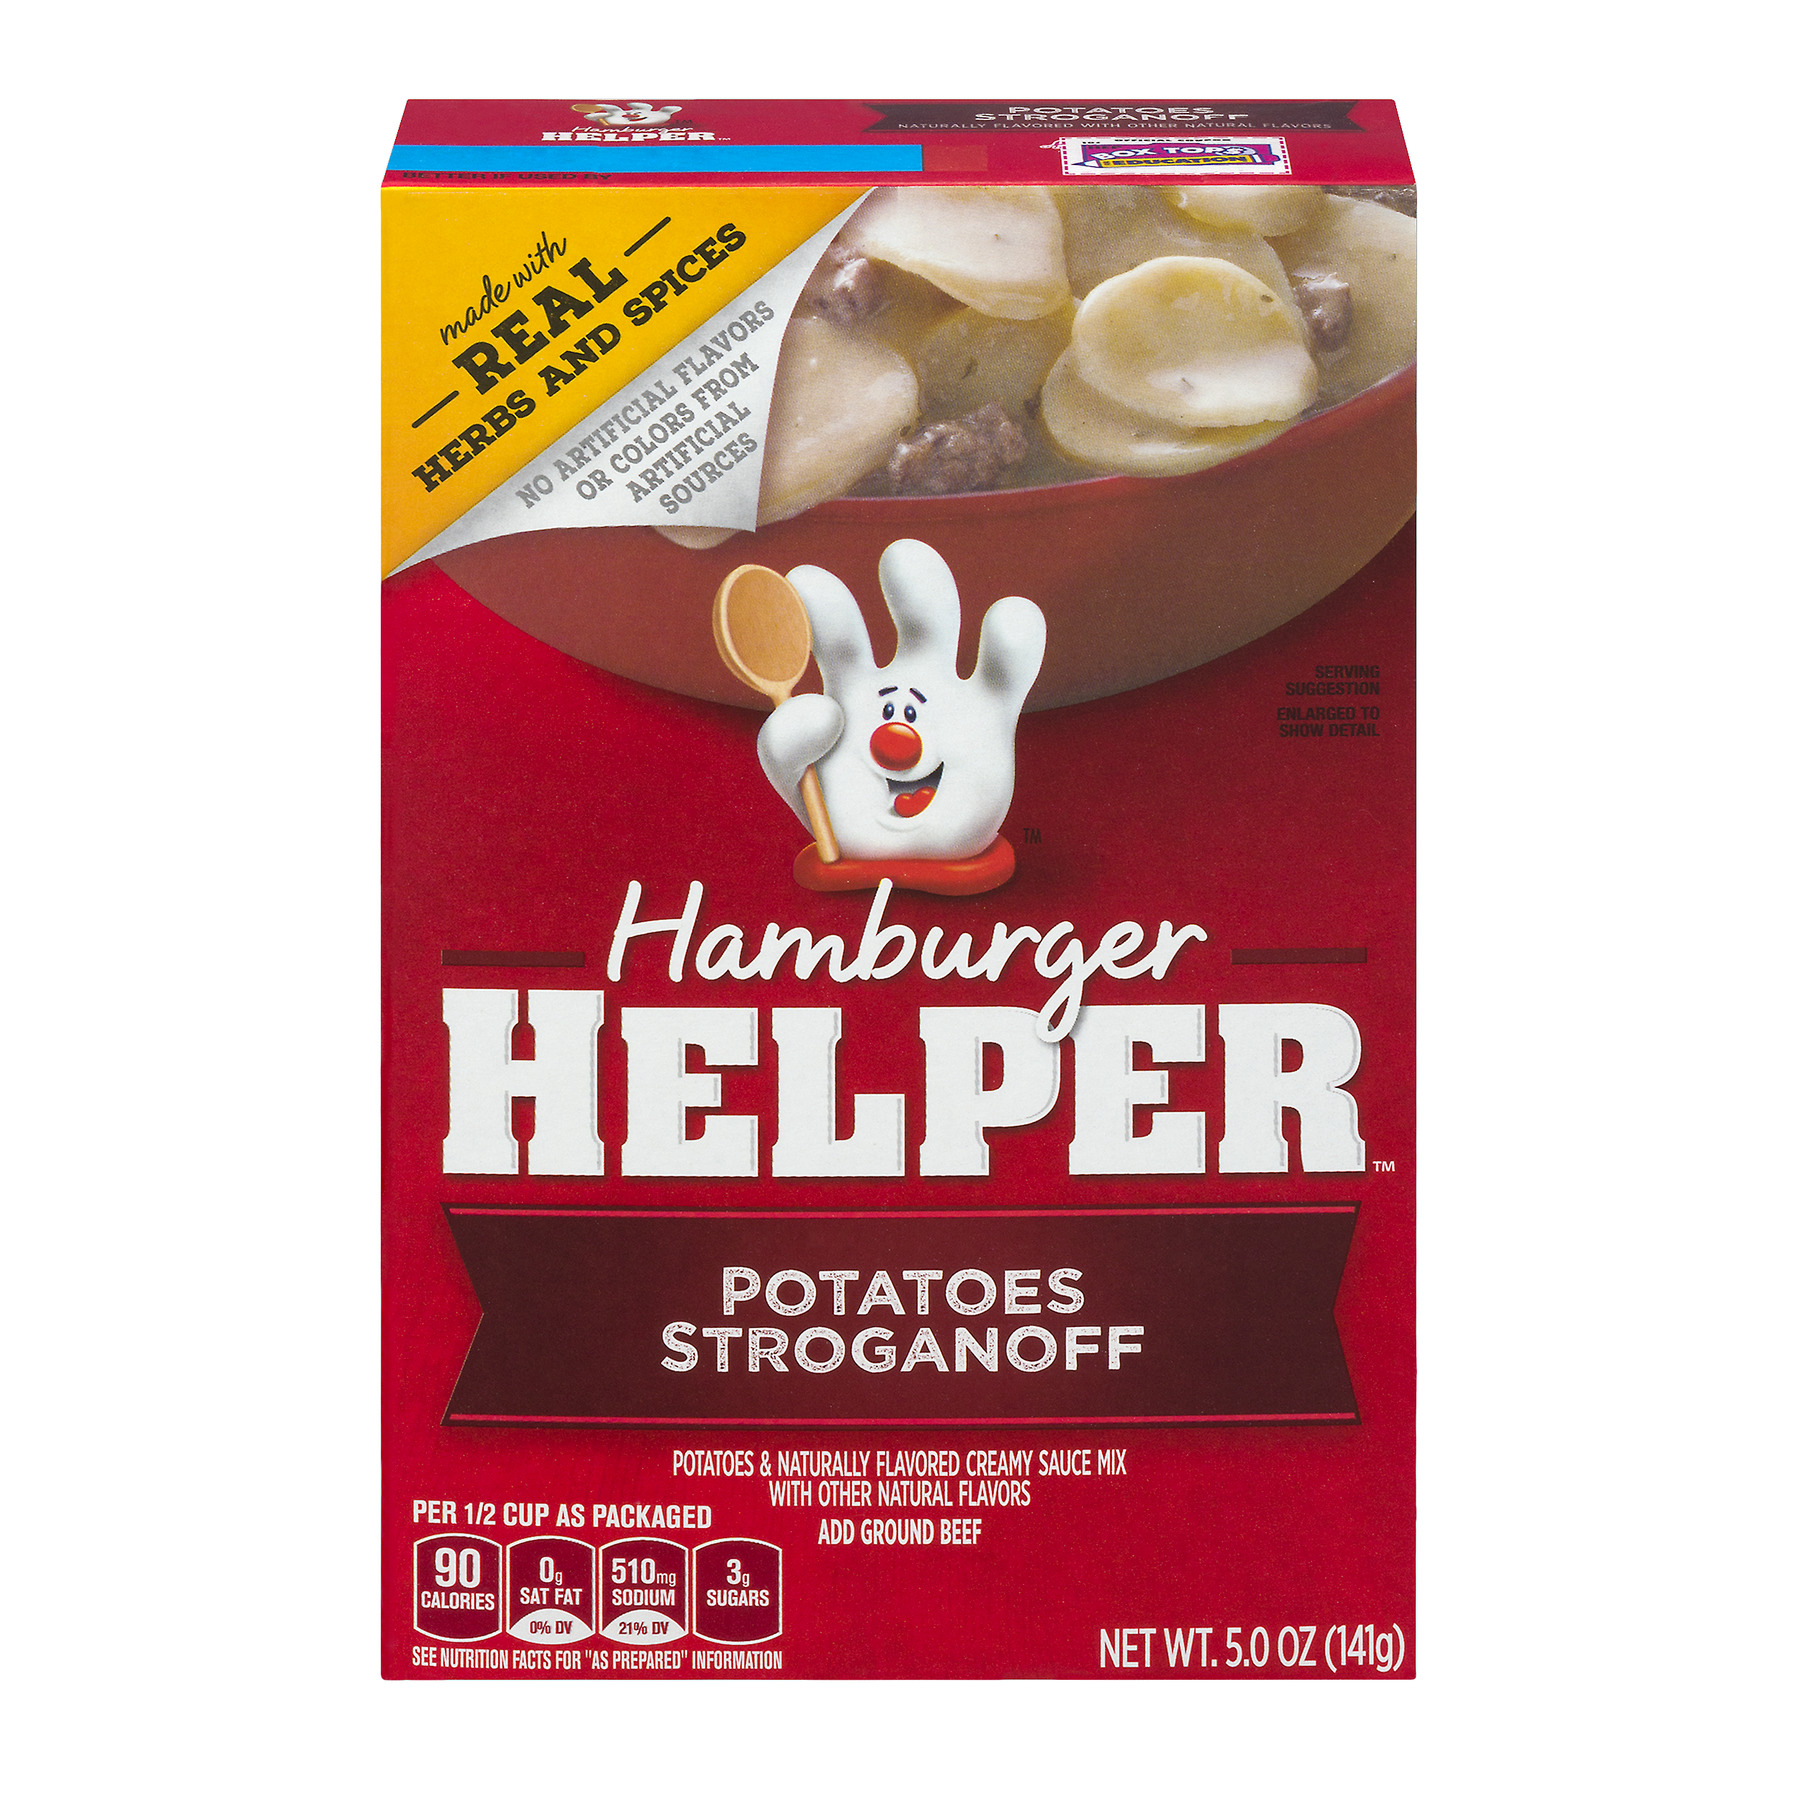 Betty Crocker® Hamburger Helper Potatoes Stroganoff 5 oz Box